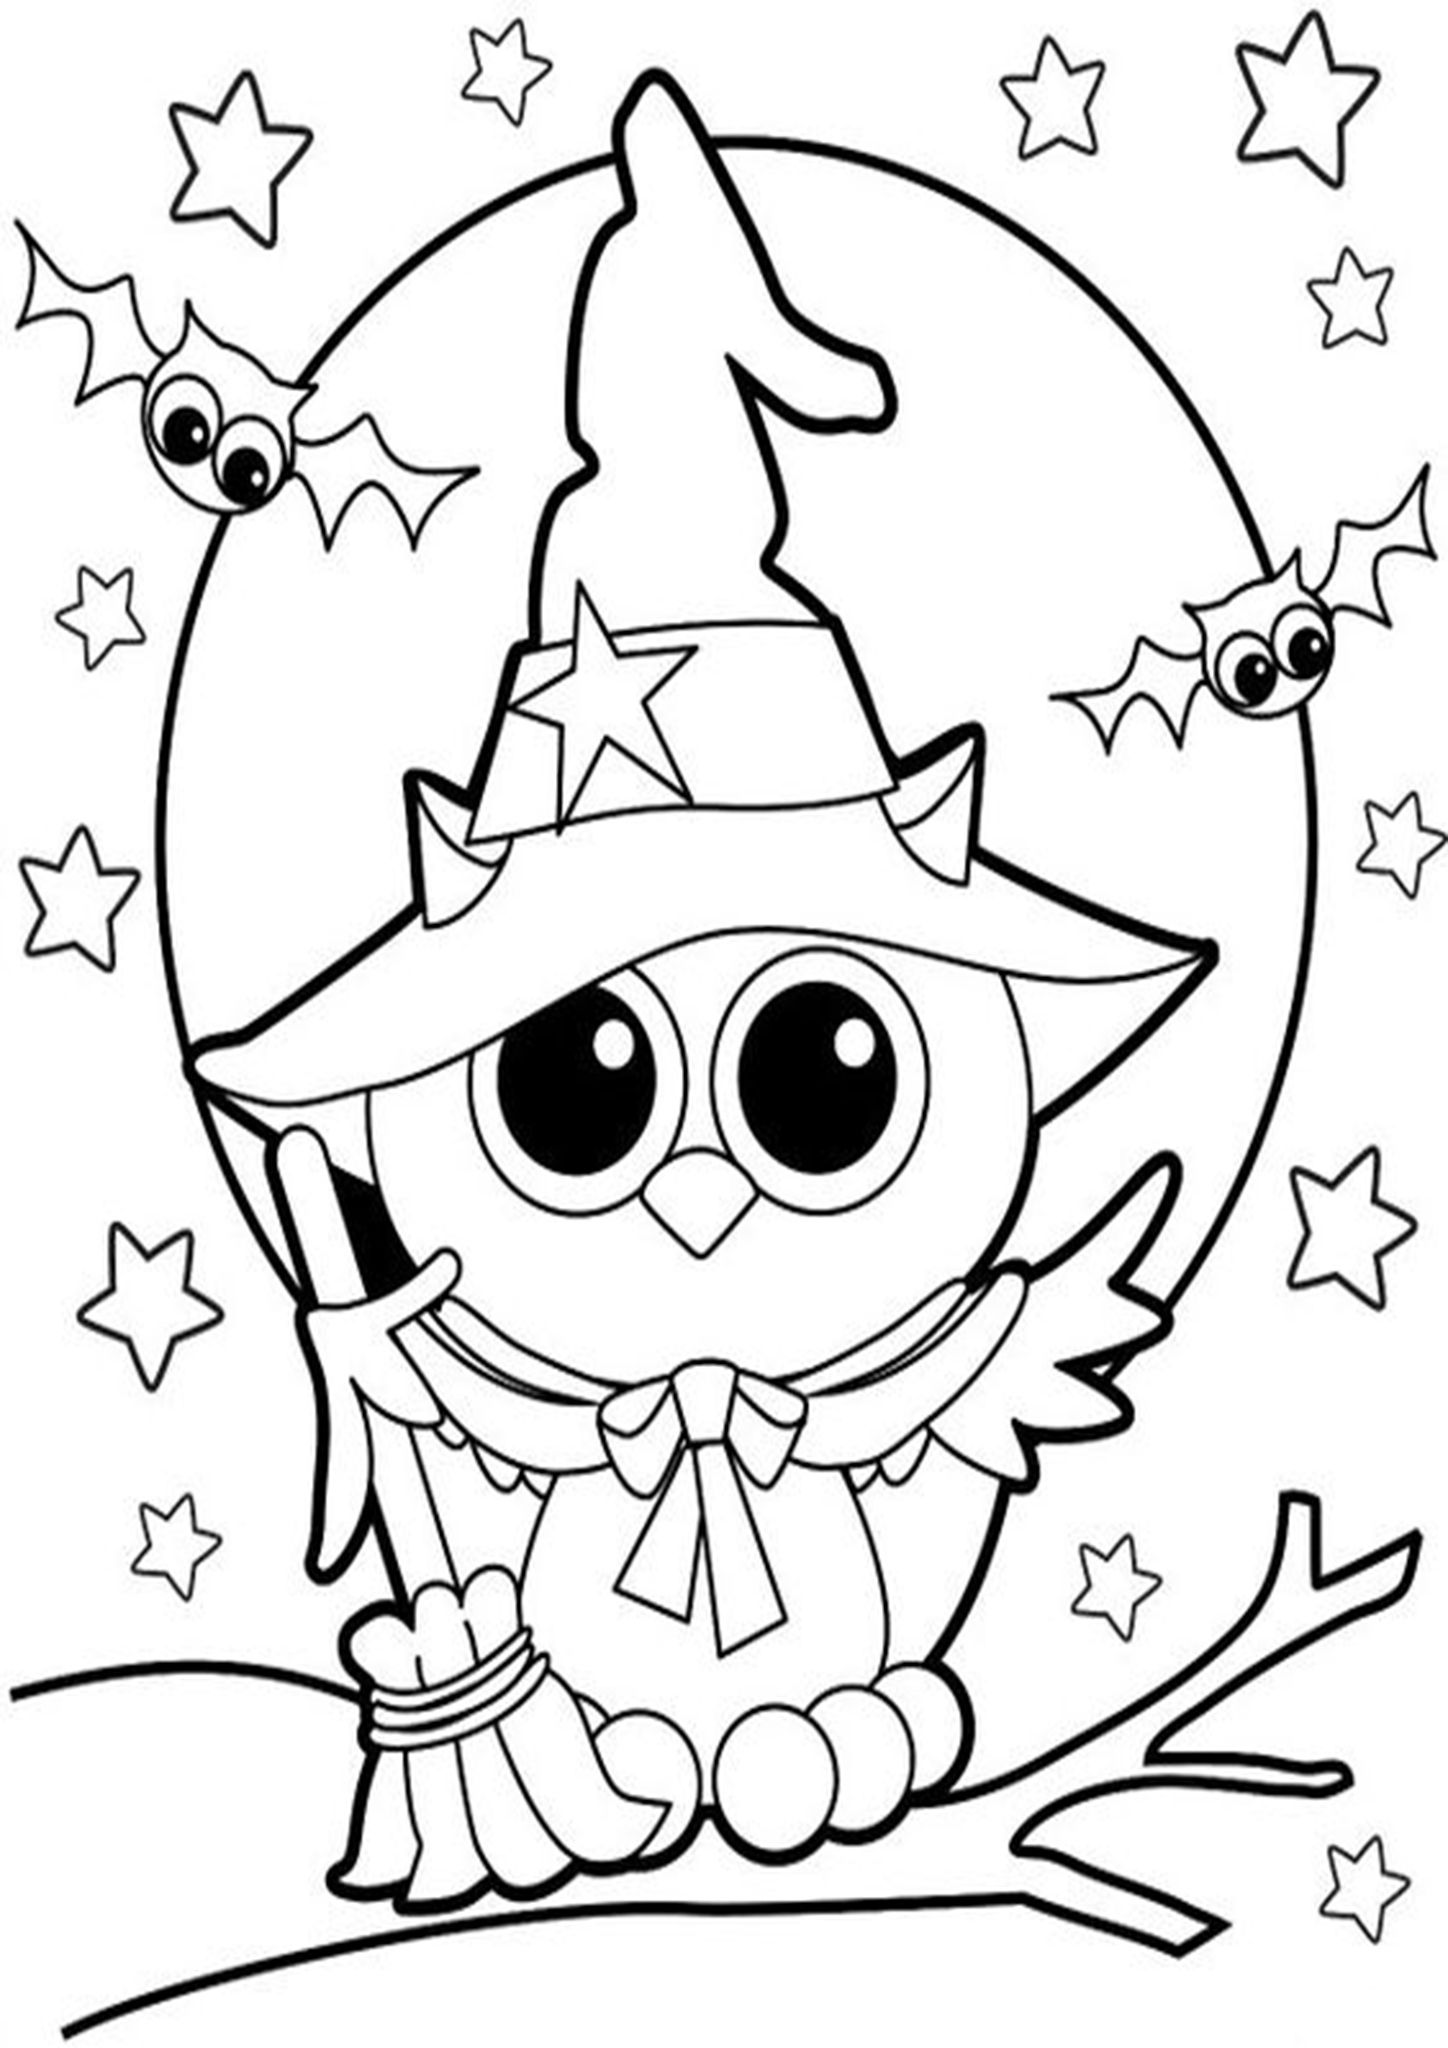 Free Easy To Print Owl Coloring Pages Free Halloween Coloring Pages Owl Coloring Pages Halloween Coloring Book